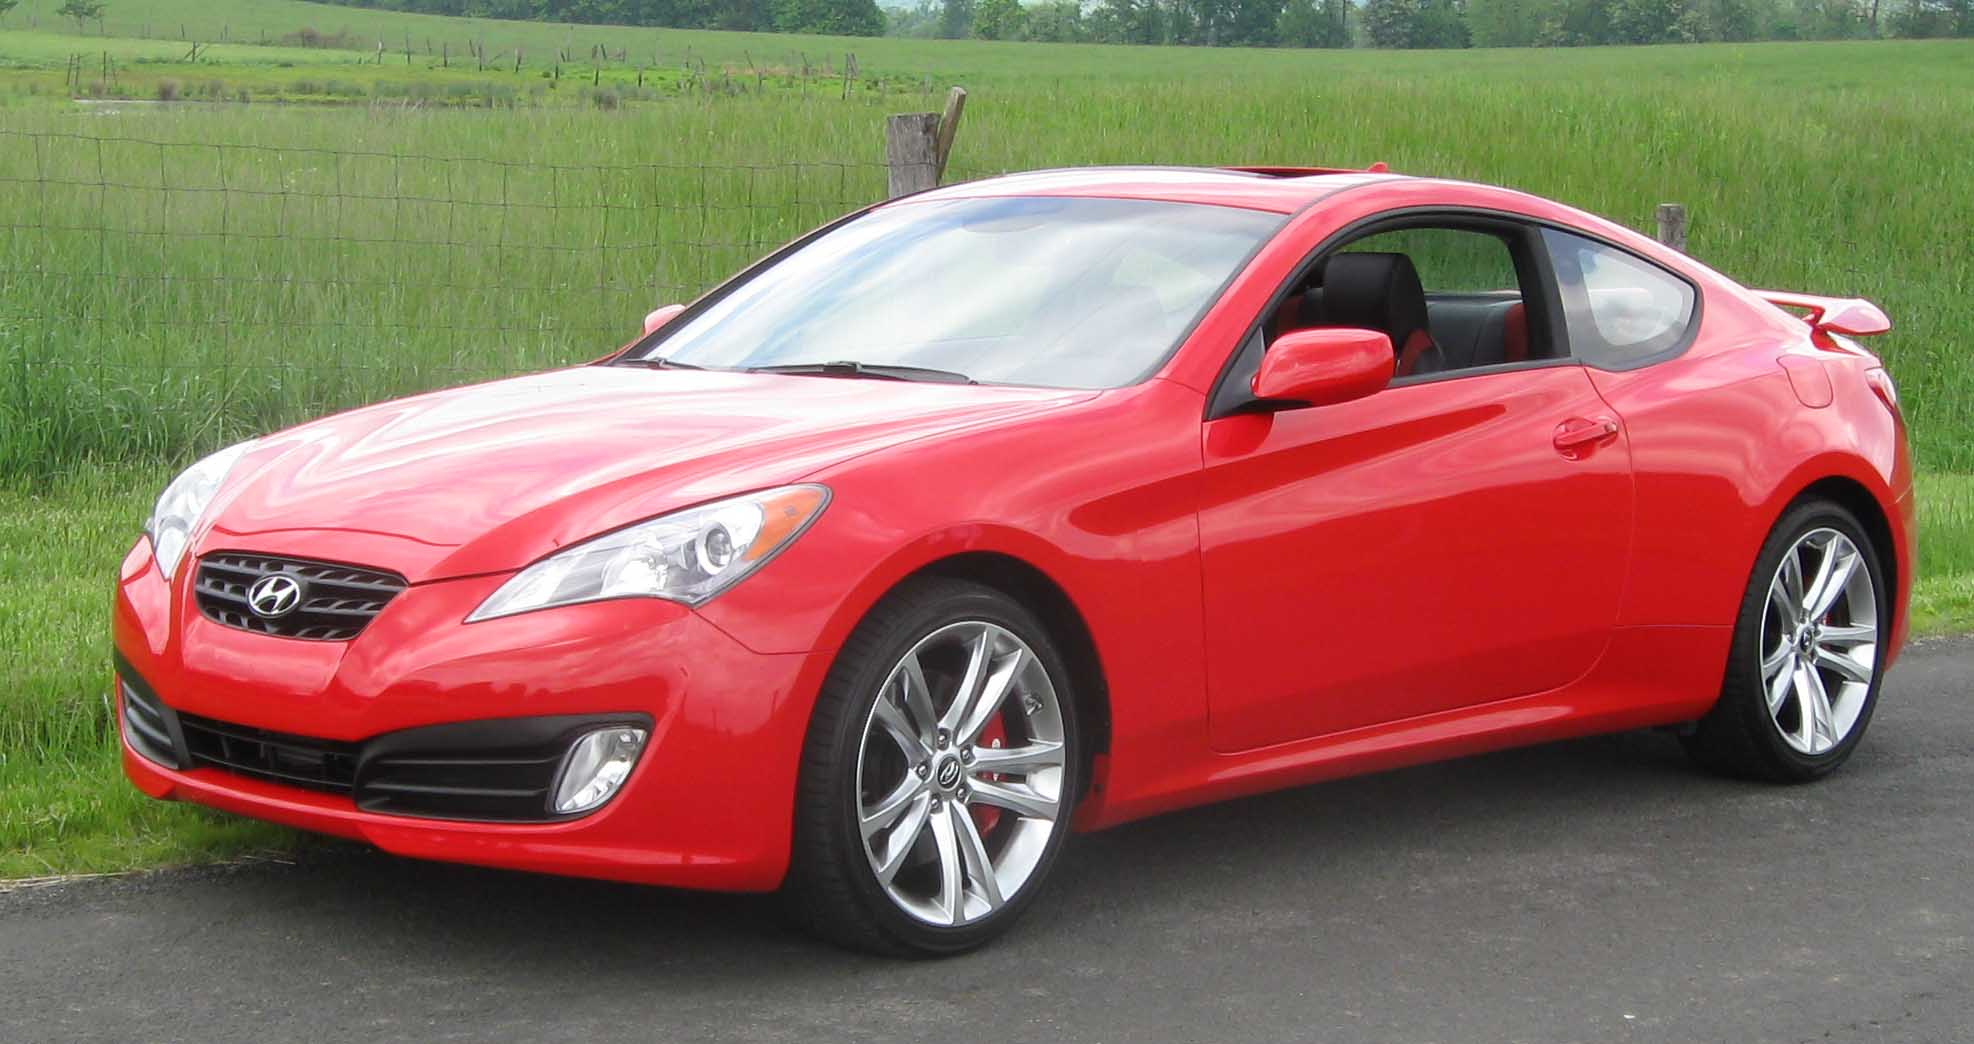 hyundai genesis coupe car photos hyundai genesis coupe. Black Bedroom Furniture Sets. Home Design Ideas